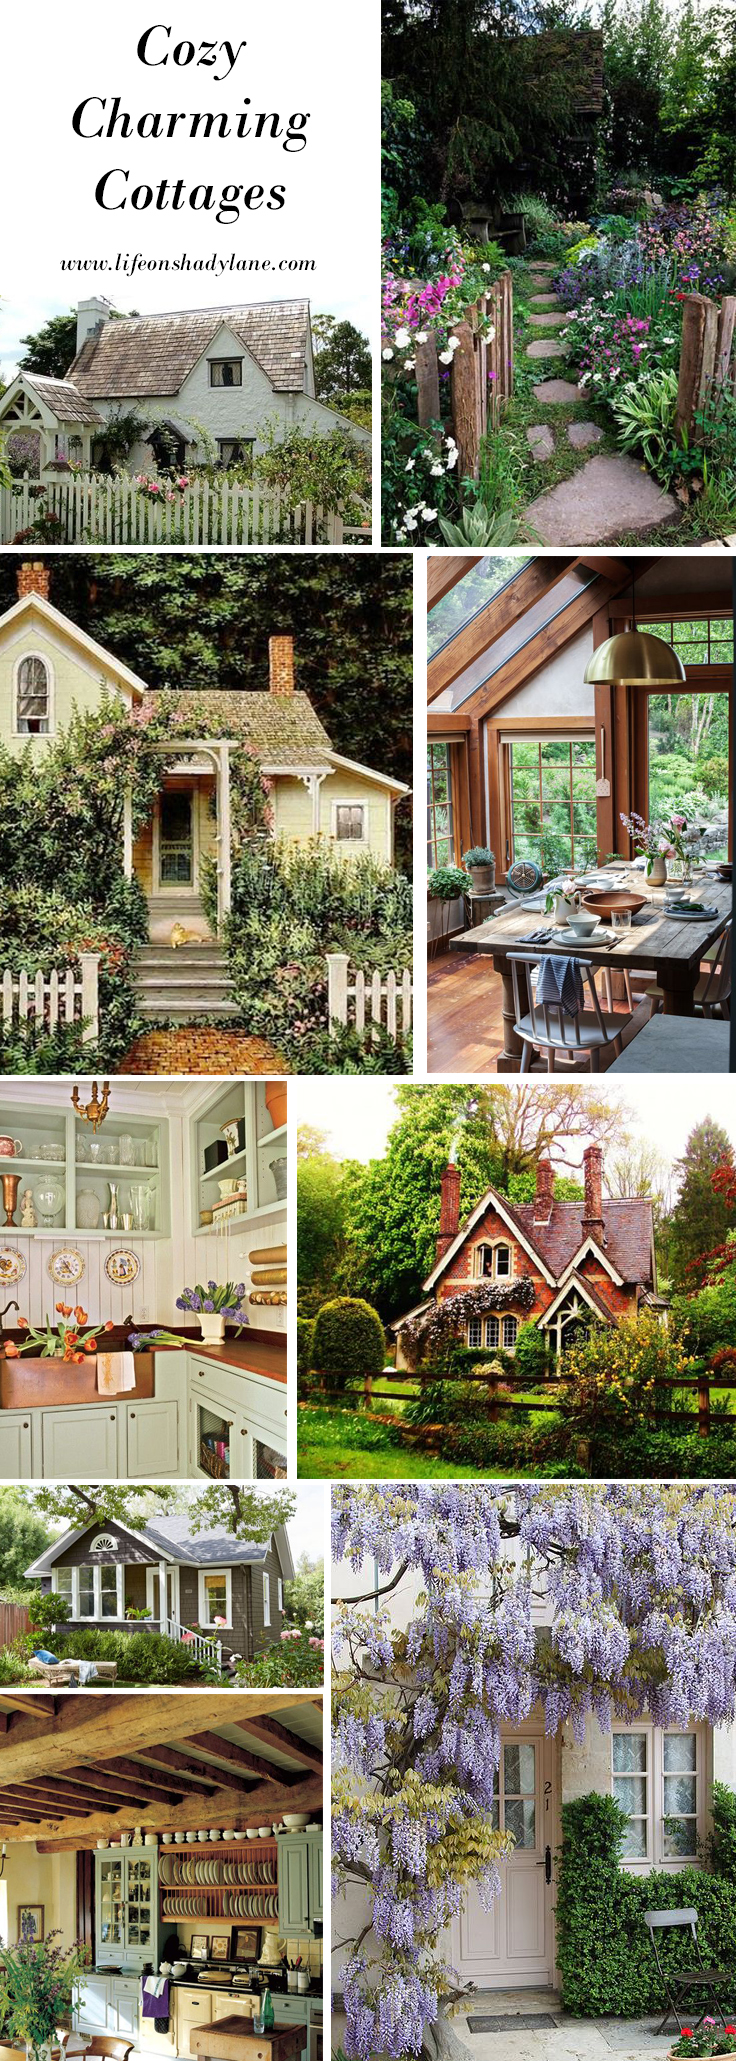 Cozy, Charming Cottages via Life on Shady Lane blog